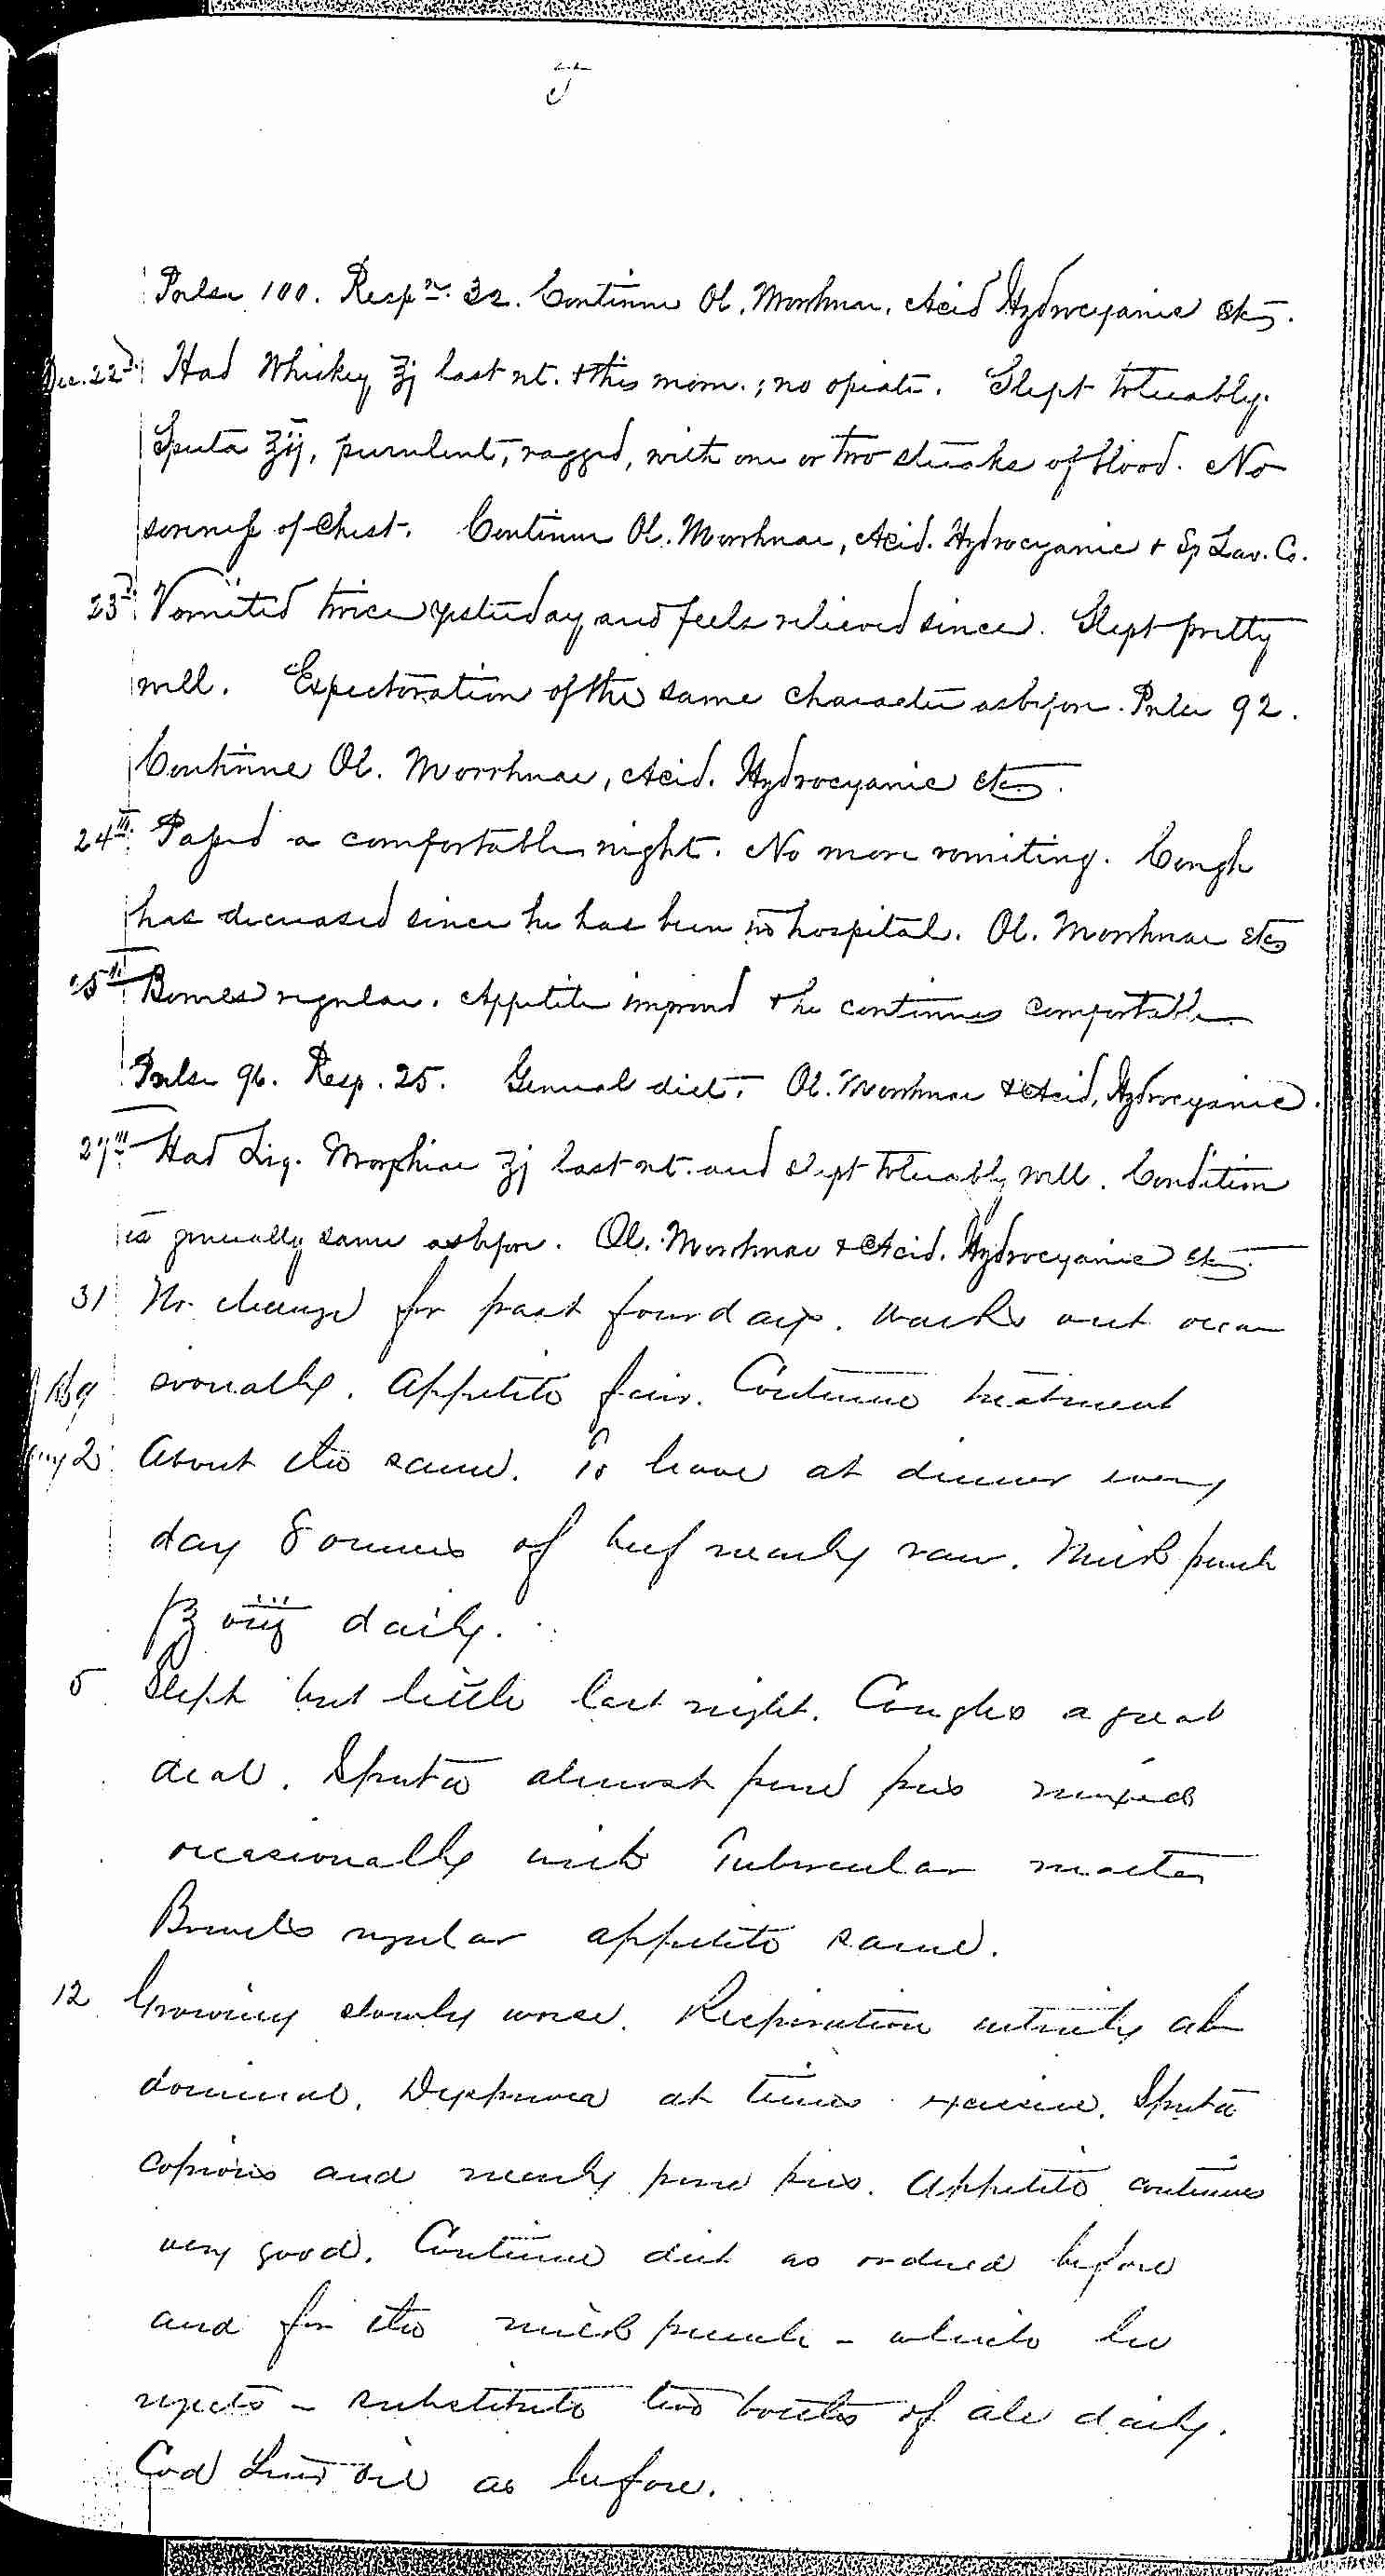 Entry for William Jackson (page 3 of 7) in the log Hospital Tickets and Case Papers - Naval Hospital - Washington, D.C. - 1868-69